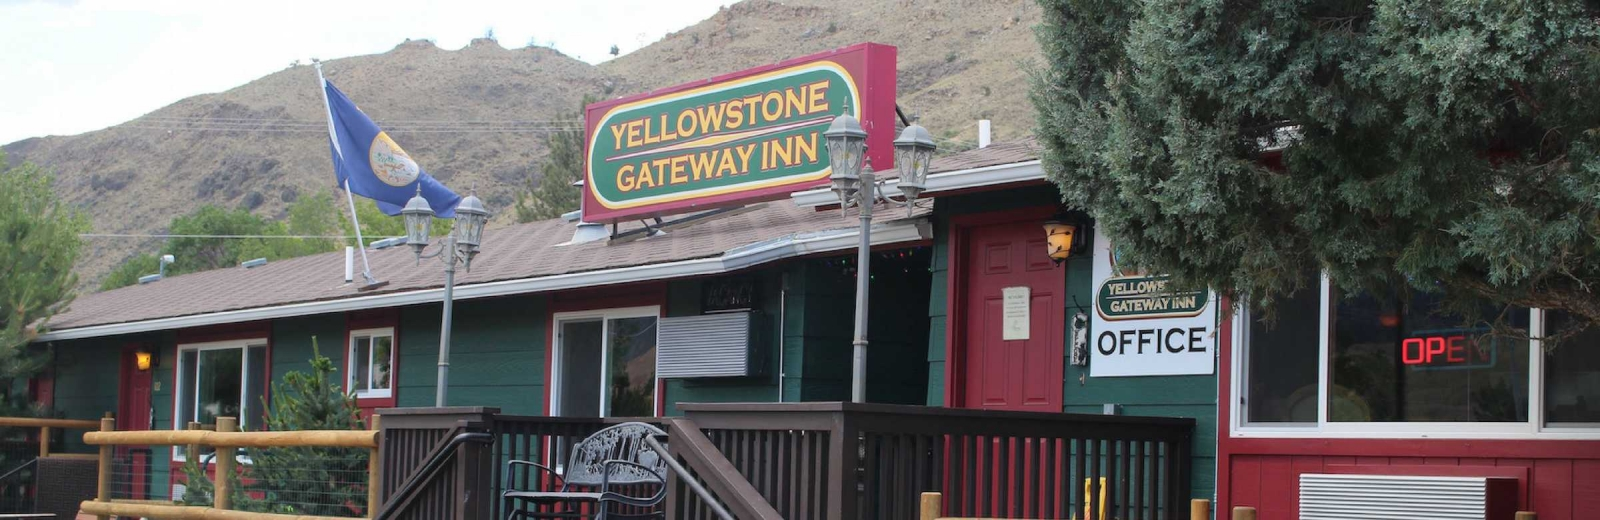 Yellowstone Gateway Inn